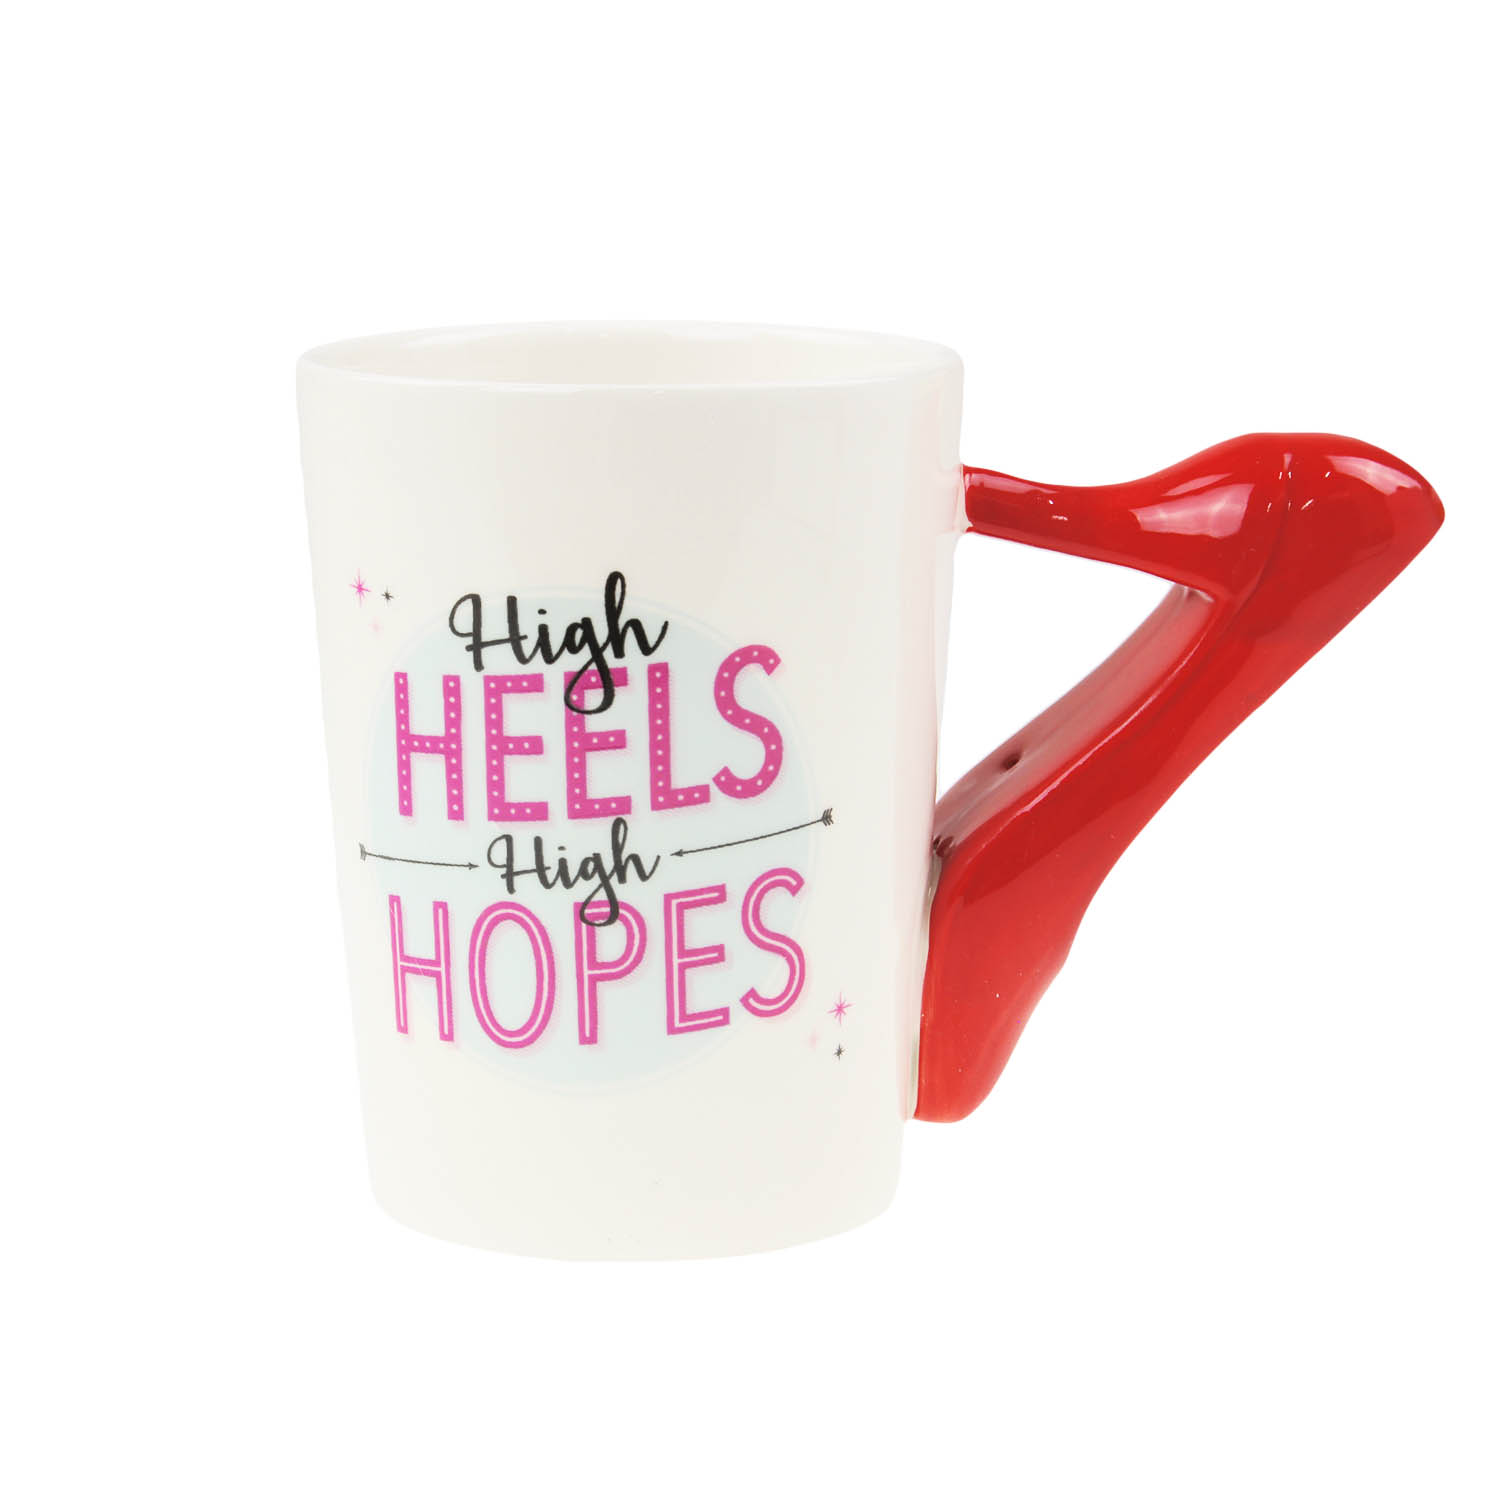 Details about Set of 2 250ml Ceramic Novelty Ladies Mug Lipstick and Heels Handle Gift Idea